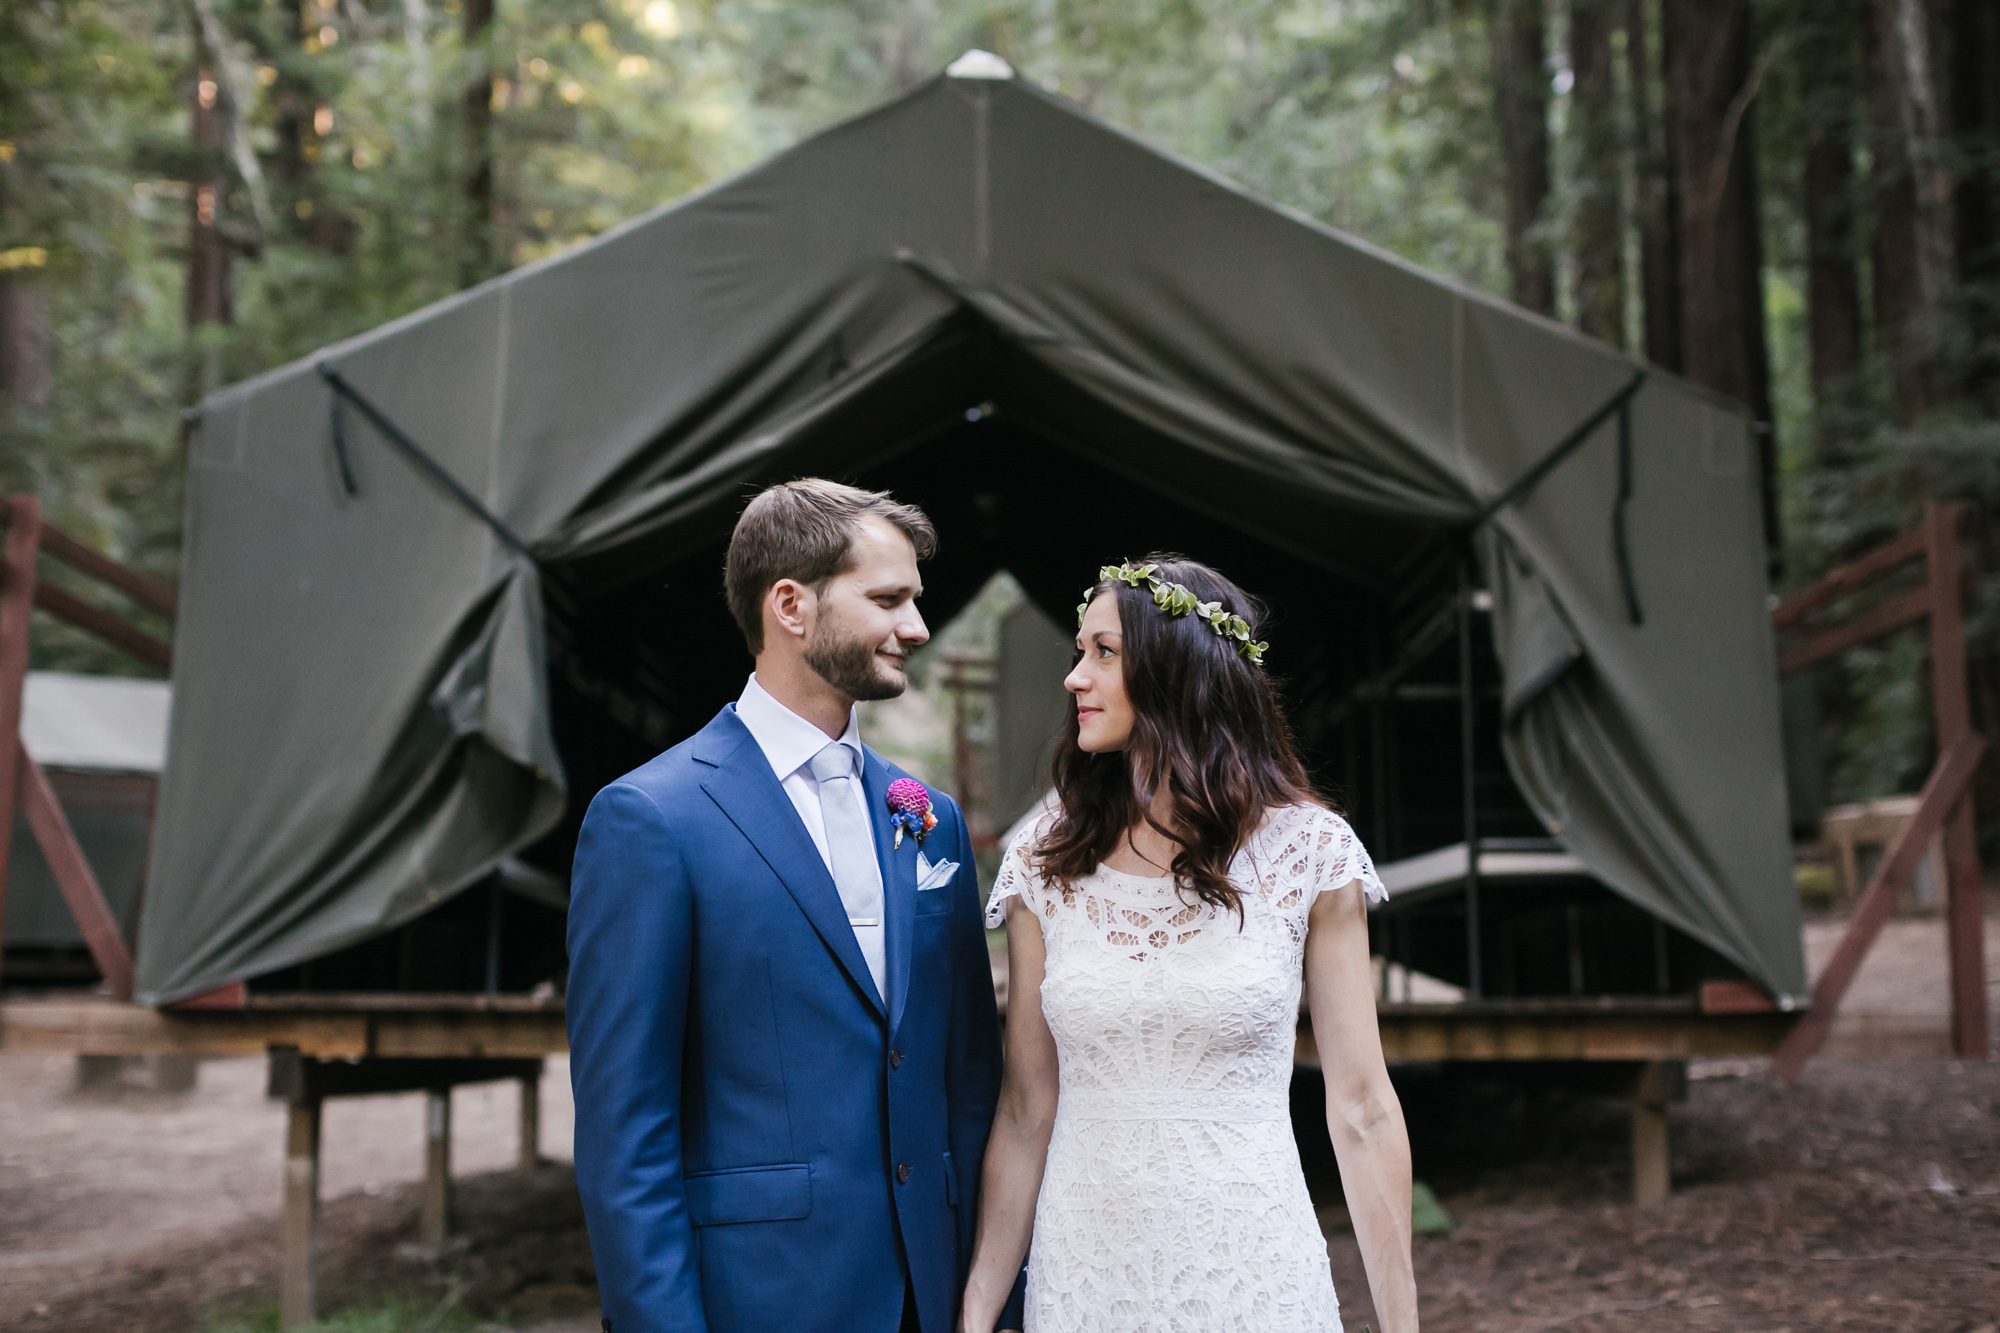 Groom in blue suit and his bride wearing a lace wedding dress and floral crown stand in front of a camp tent in the Santa Cruz Mountains.